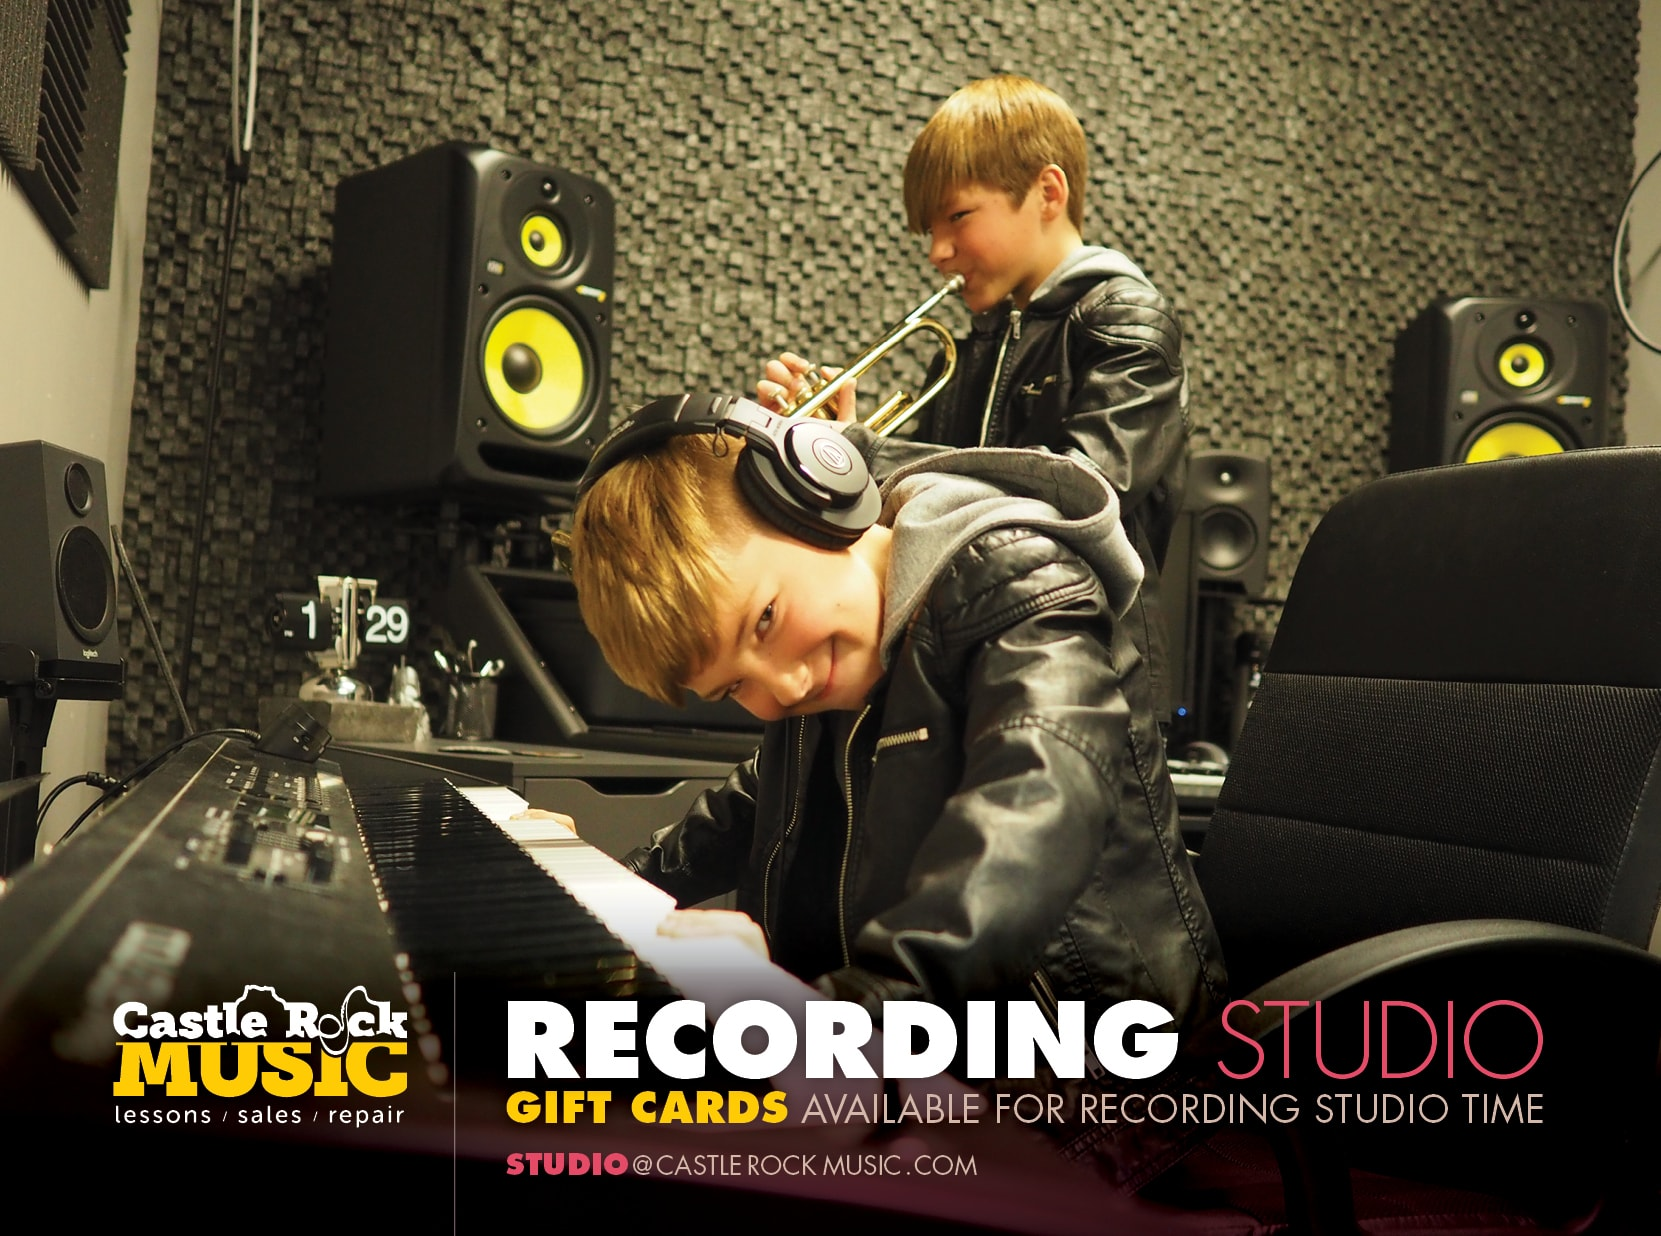 Recording Studio at Castle Rock Music -- Gift Cards available for recording studio time -- Email us at studio@castlerockmusic.com